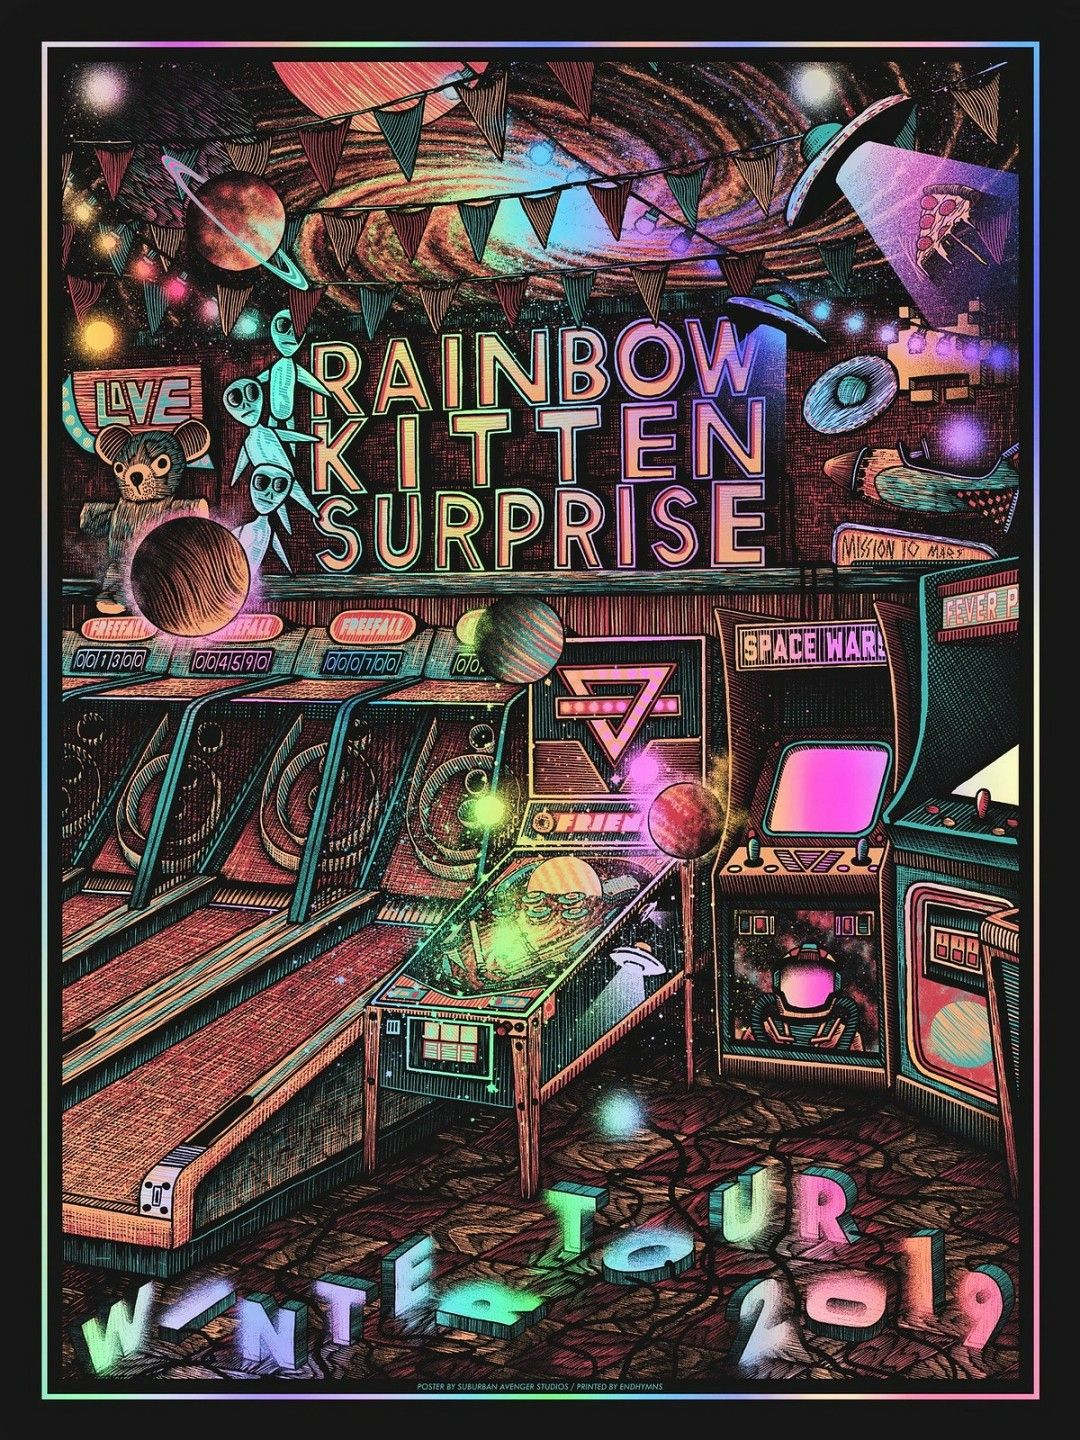 Poster Art For Rainbow Kitten Surprise Concert Poster Art Rainbow Kitten Surprise Rainbow Kittens